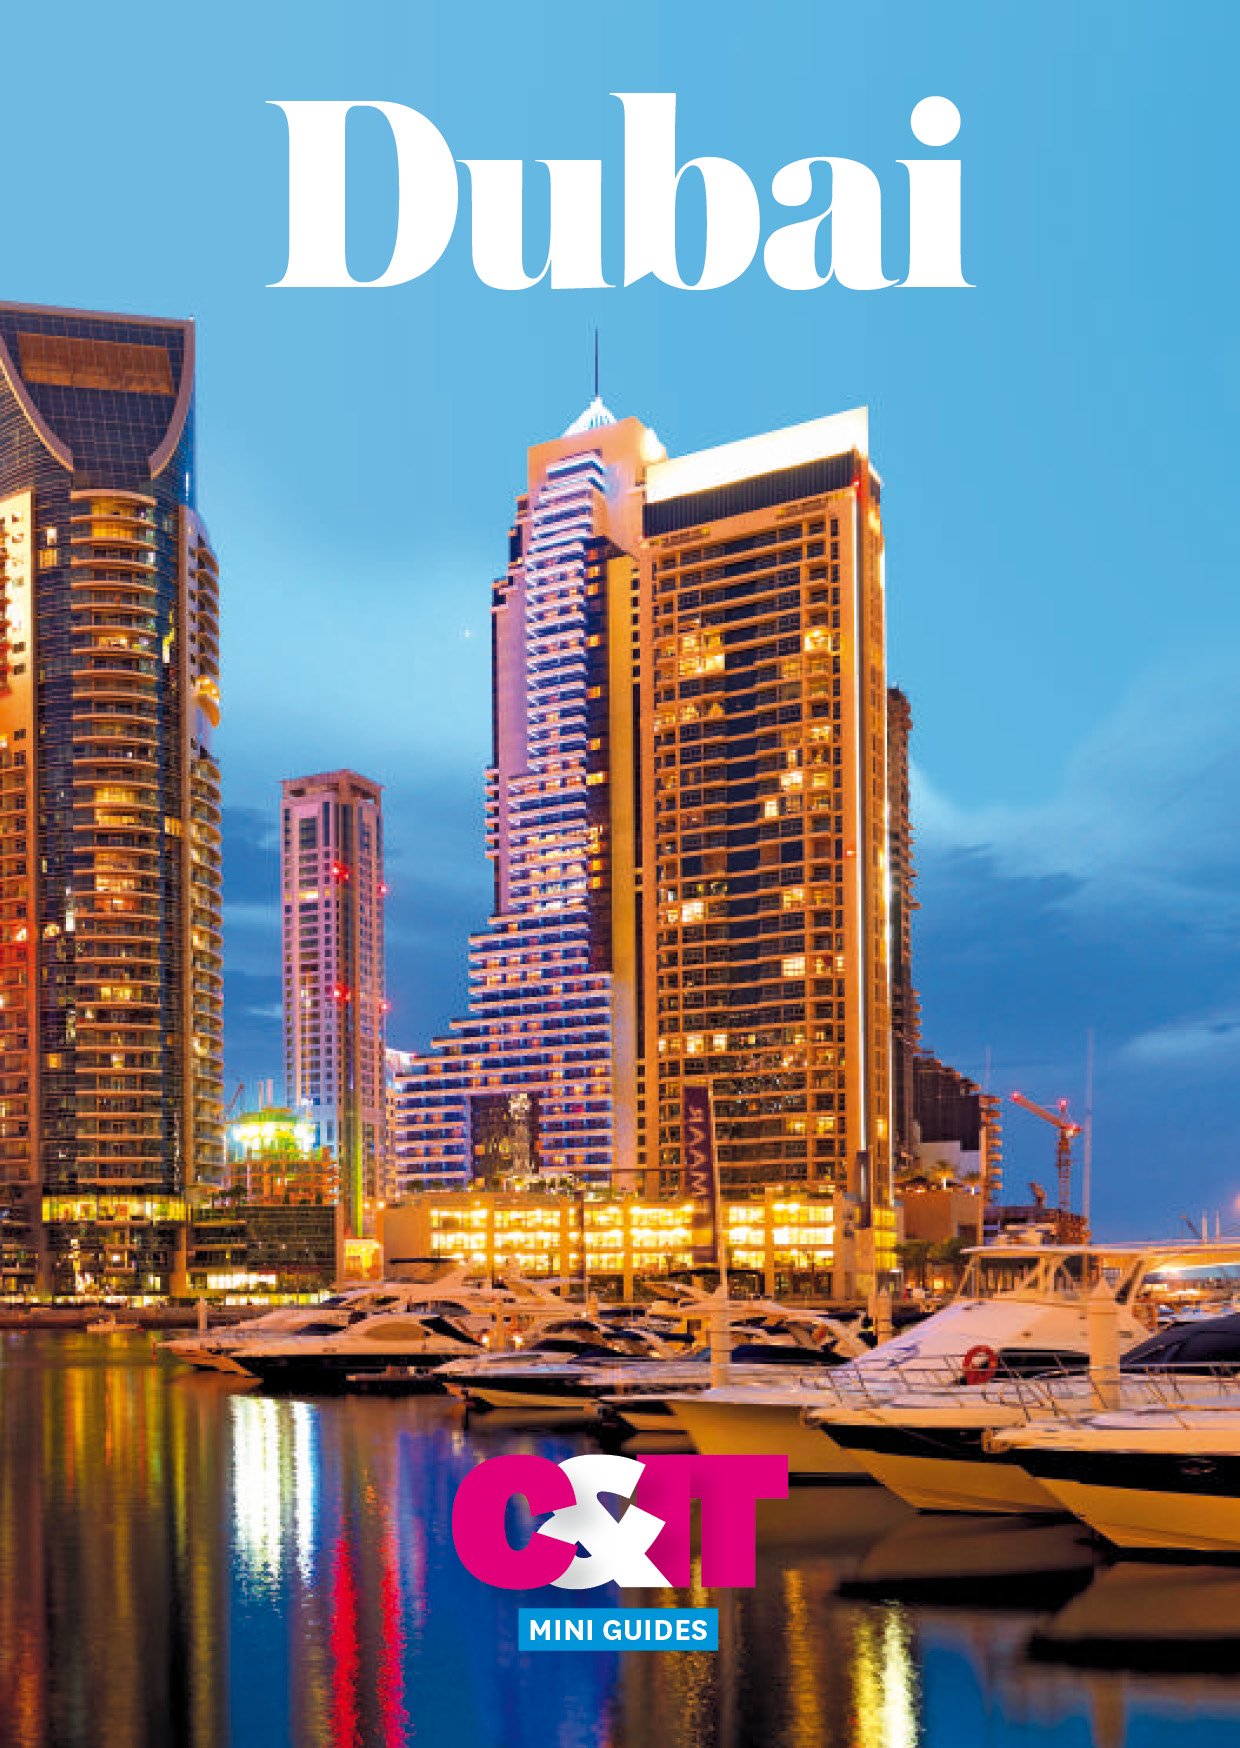 Dubai mini guide 2014